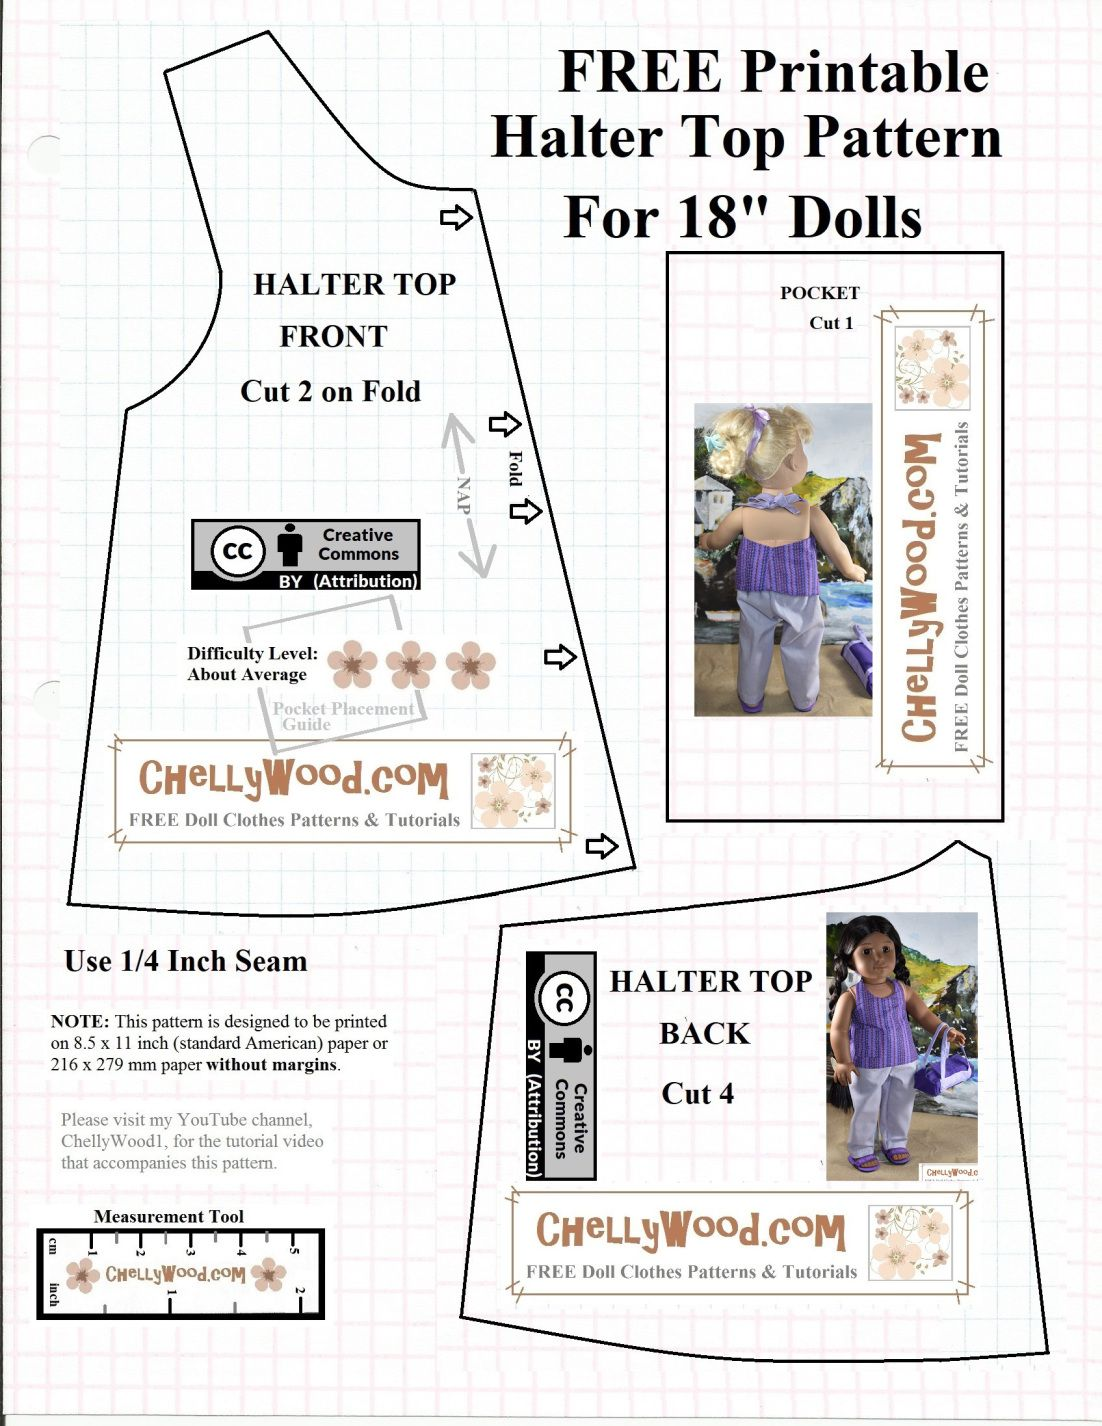 Stupendous This Image Is A Free Printable Pattern For American Girl Download Free Architecture Designs Scobabritishbridgeorg